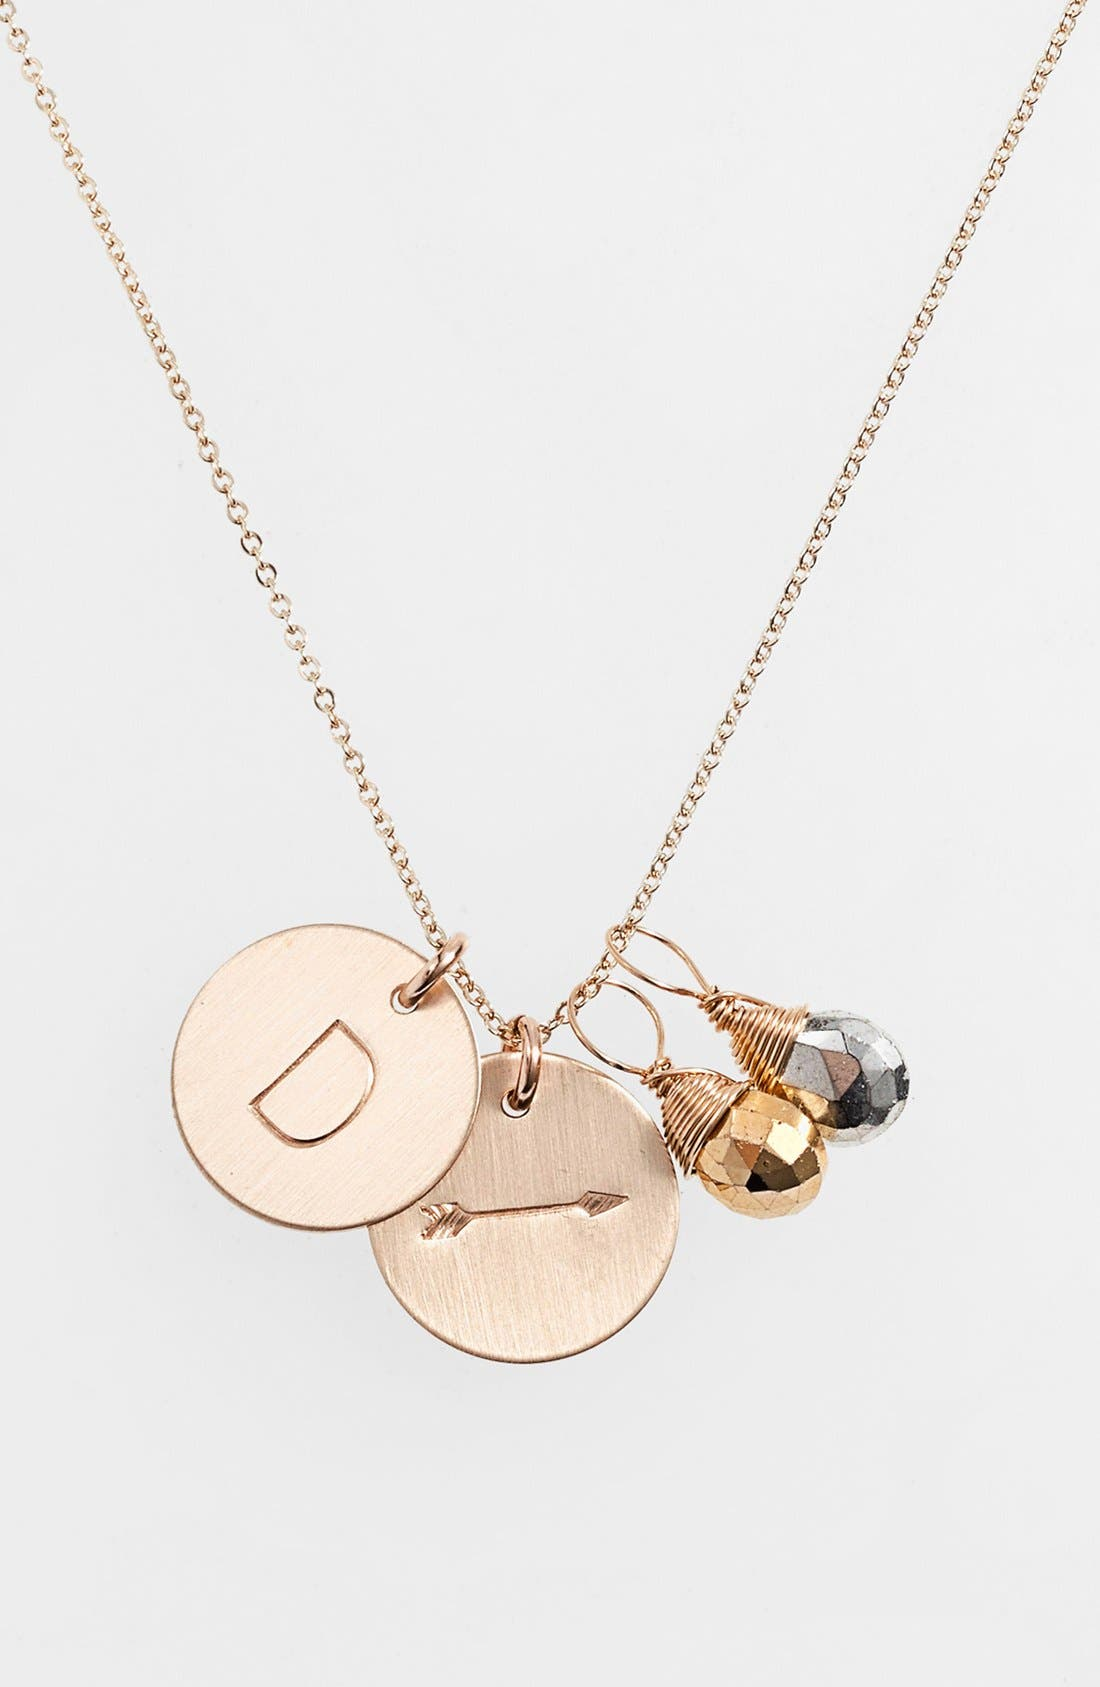 Pyrite Initial & Arrow 14k-Gold Fill Disc Necklace,                             Main thumbnail 1, color,                             Gold Pyrite/ Silver Pyrite D